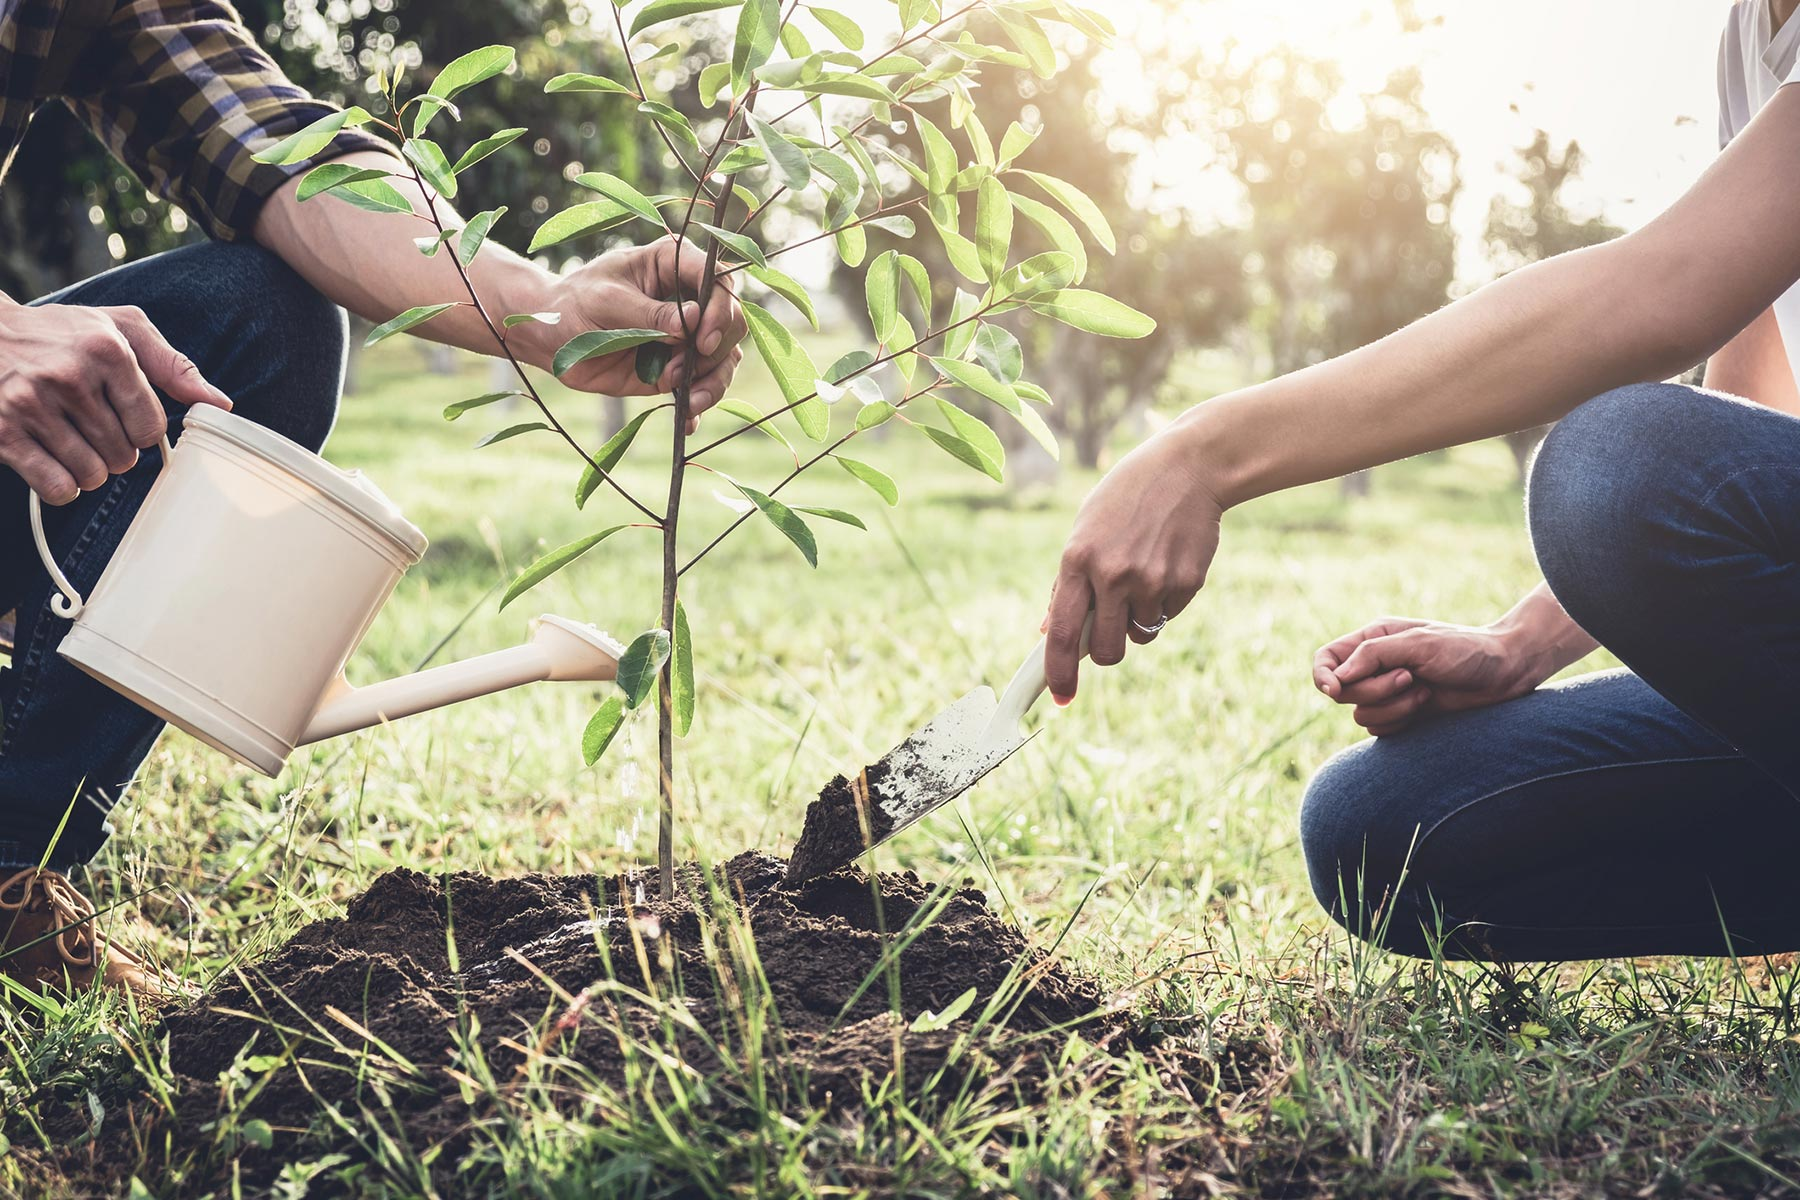 The Proper Way to Plant a Tree